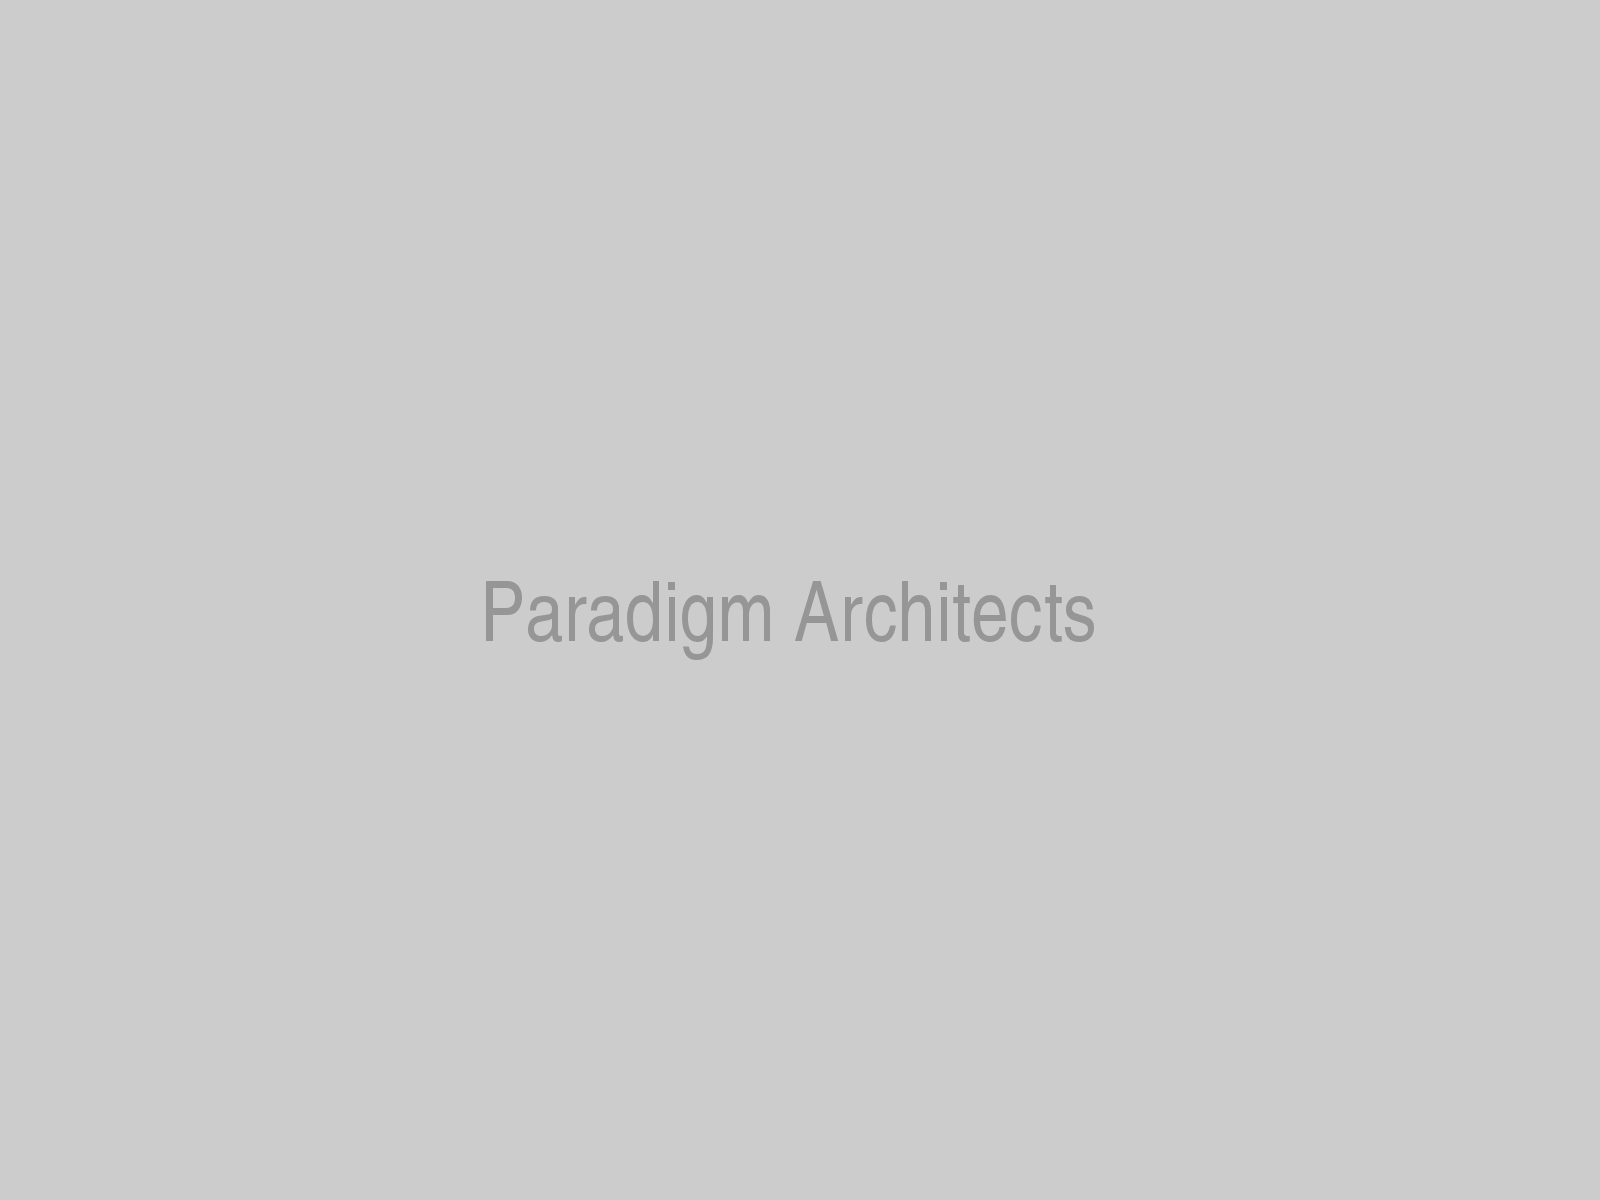 Paradigm Architects